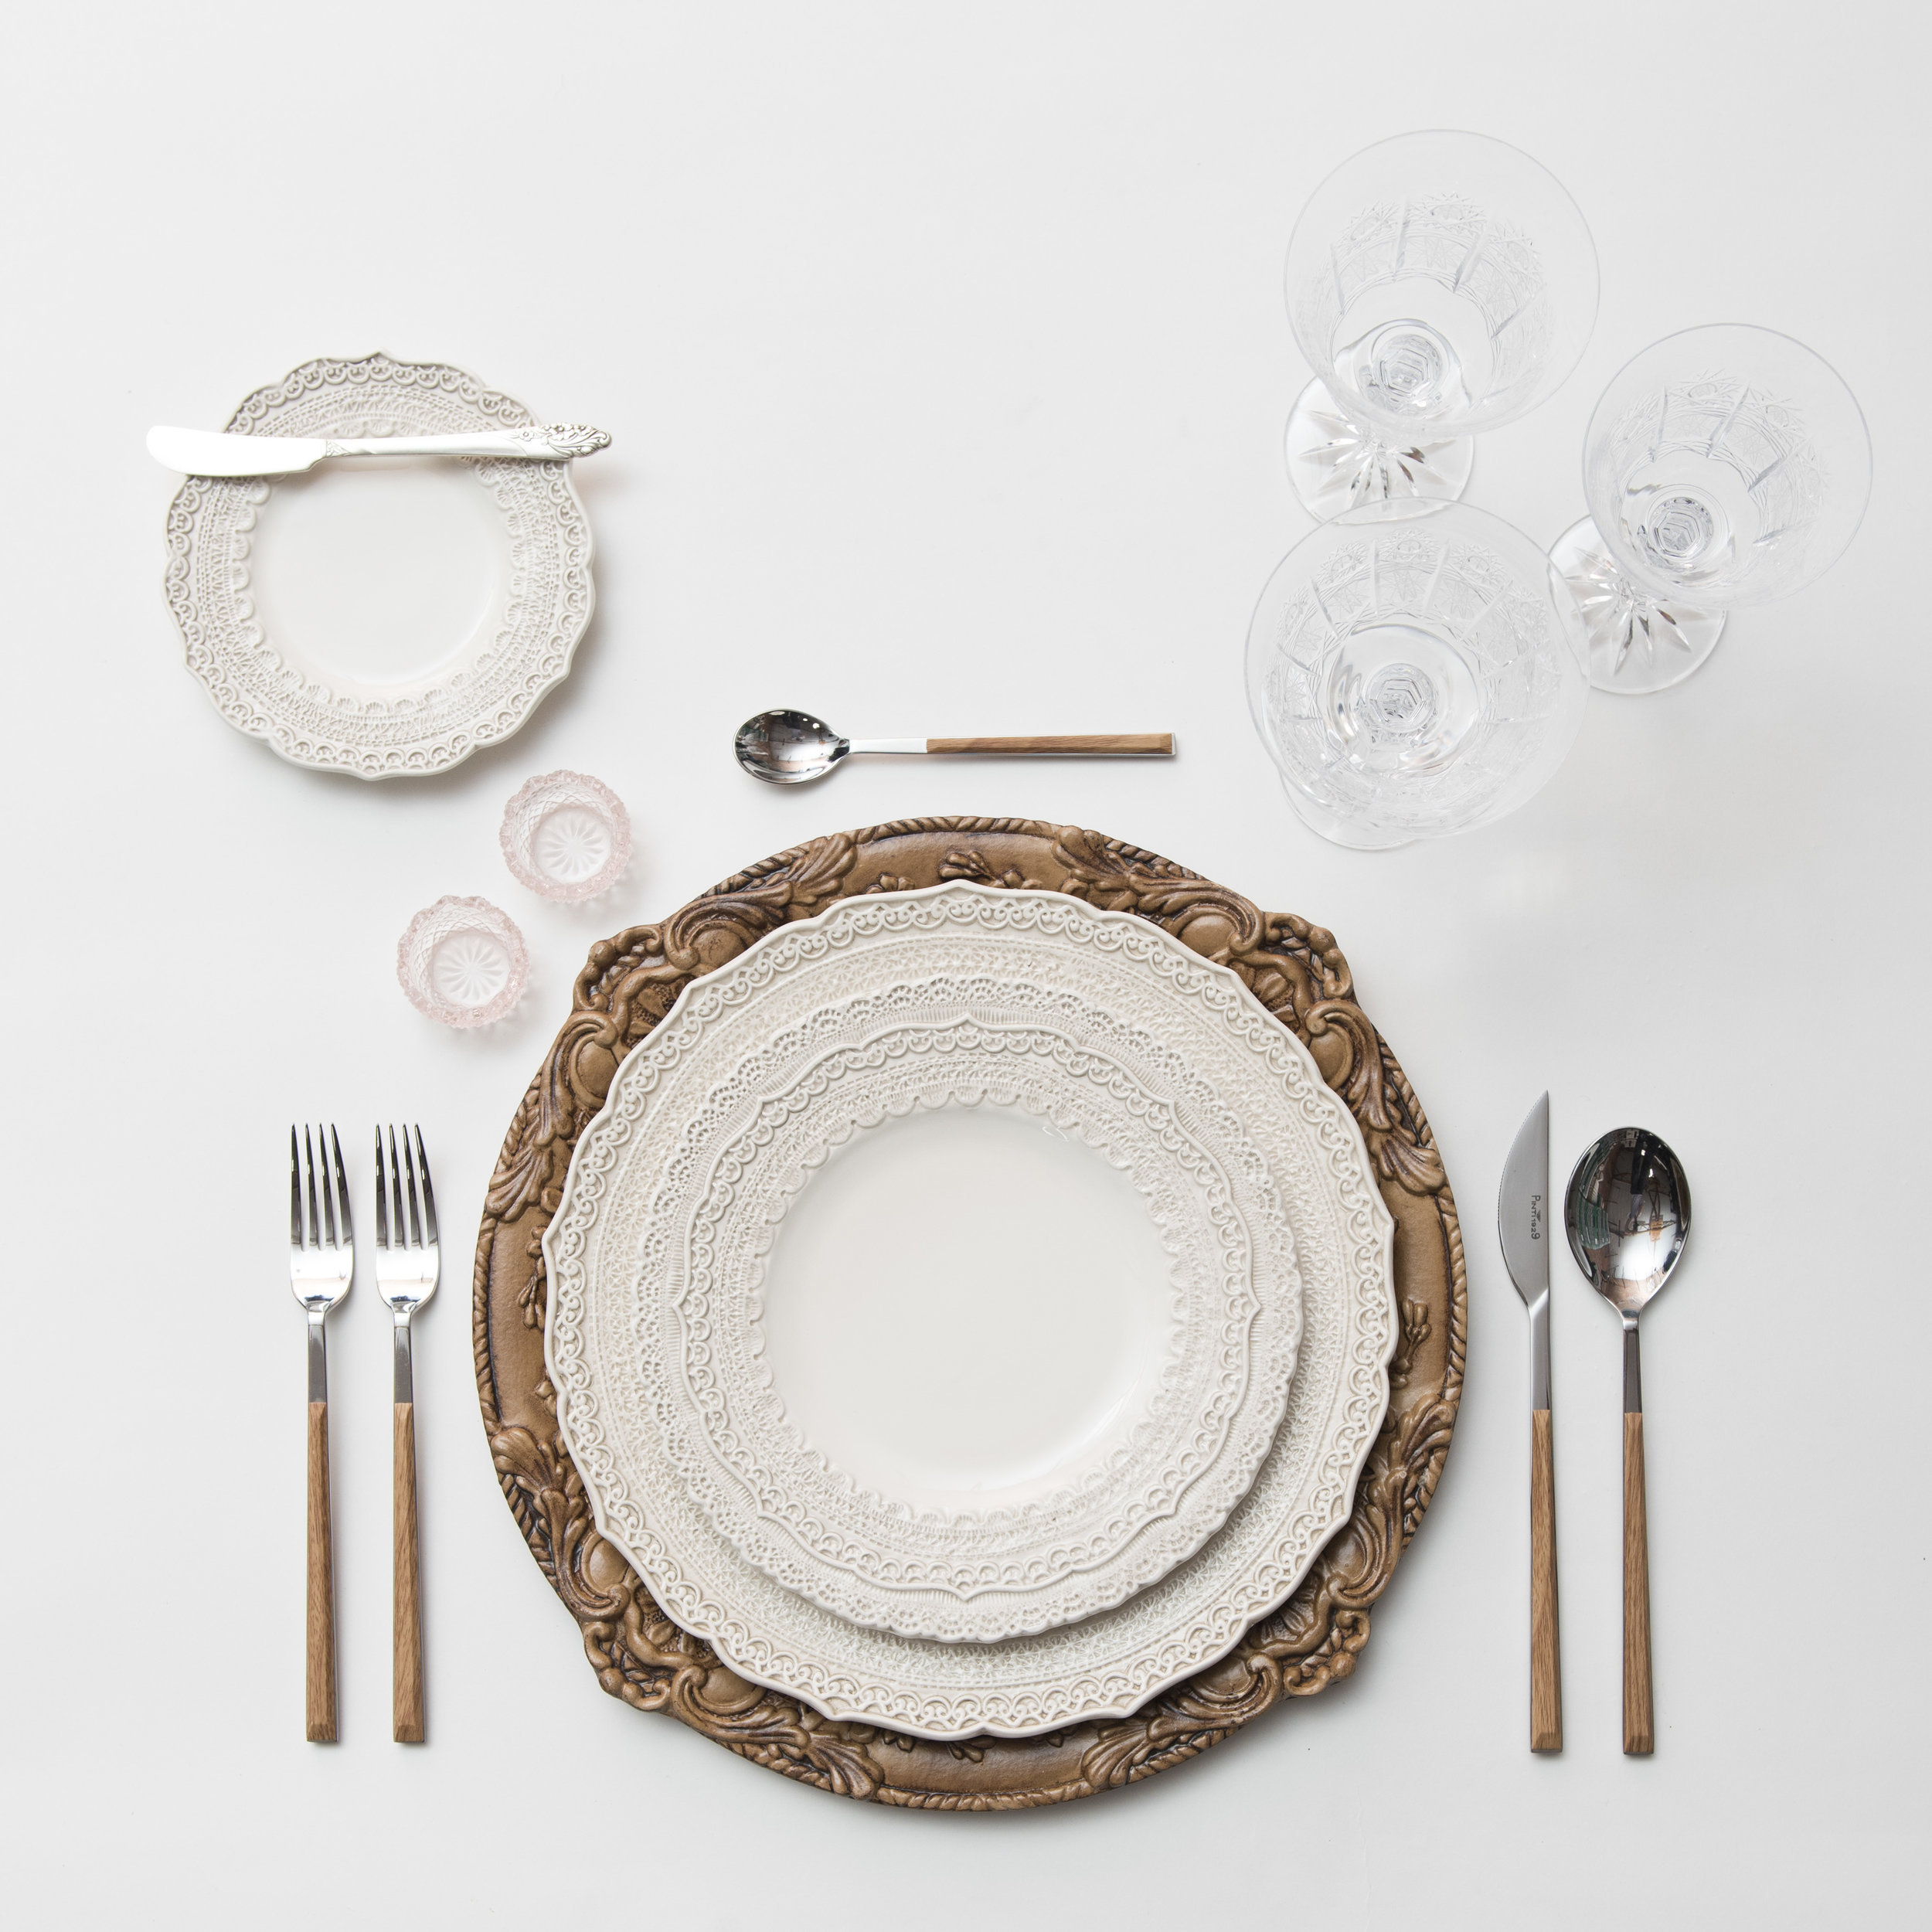 RENT: Verona Chargers in Walnut + Lace Dinnerware in White + Danish Flatware in Teak + Czech Crystal Stemware + Pink Crystal Salt Cellars   SHOP: Verona Chargers in Walnut